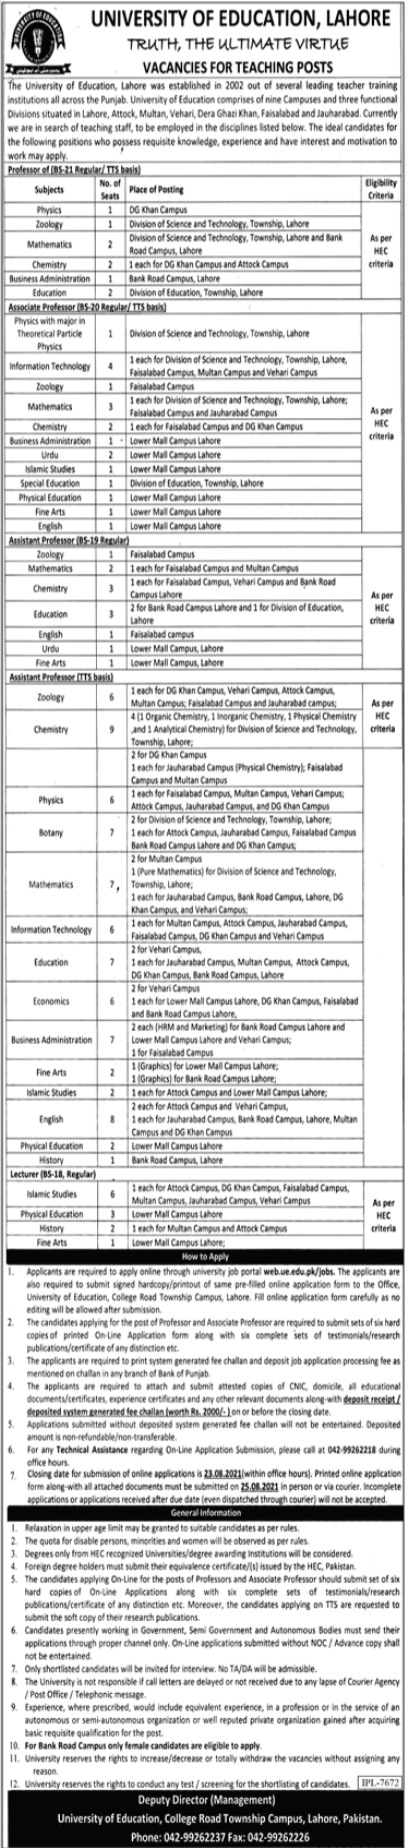 University of Education Jobs 2021 For Teaching Staff